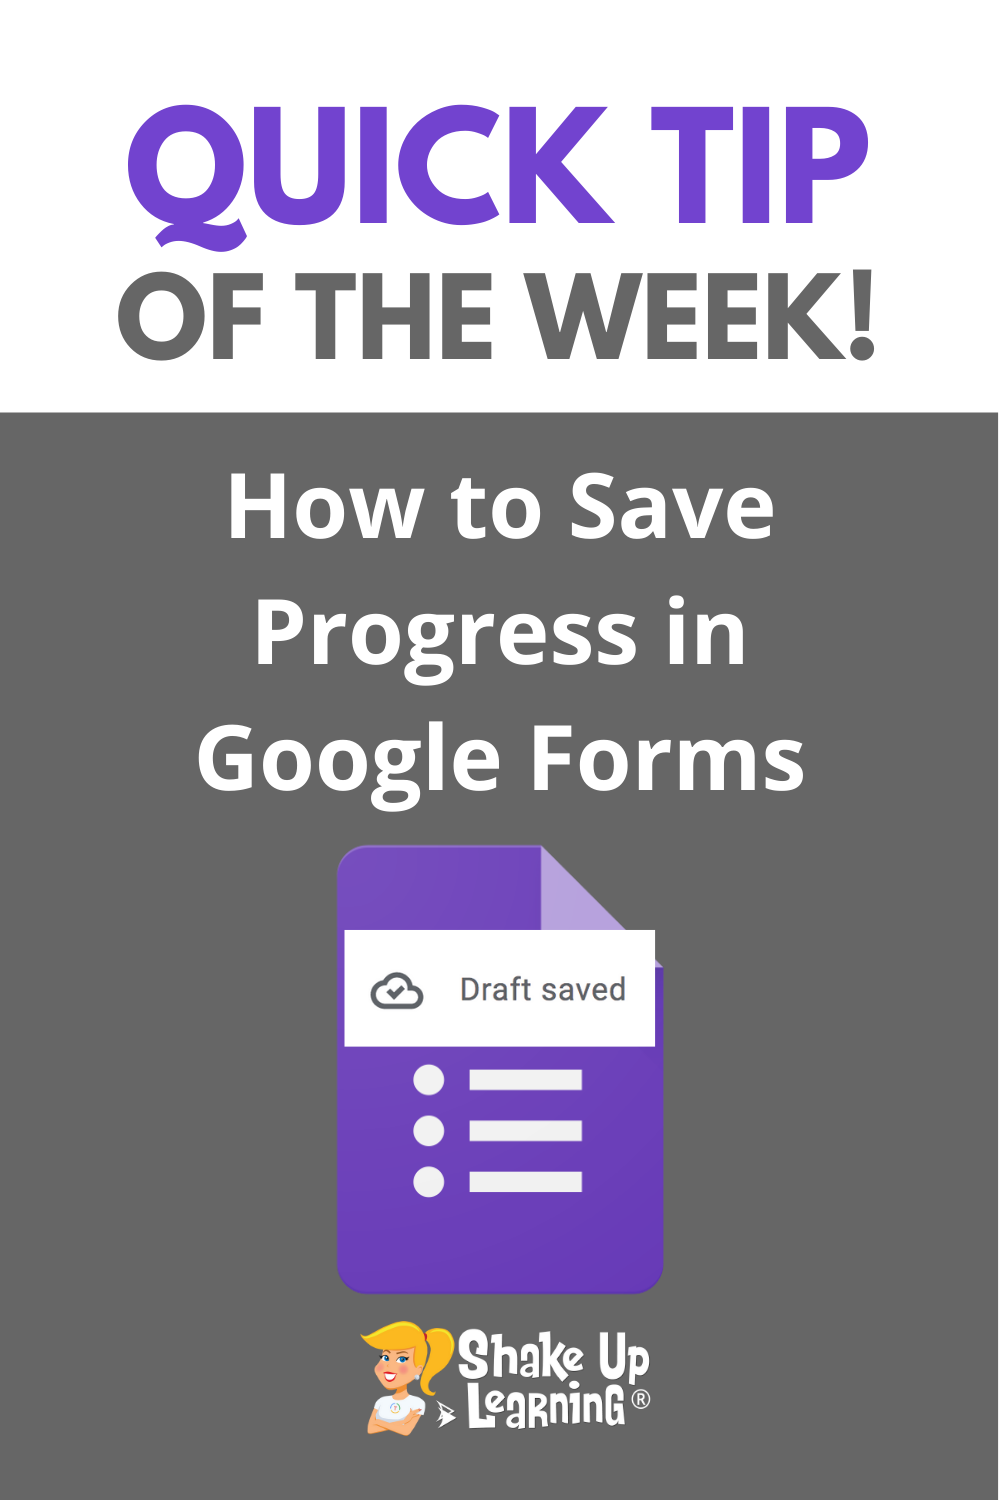 How to Save Progress in Google Forms!